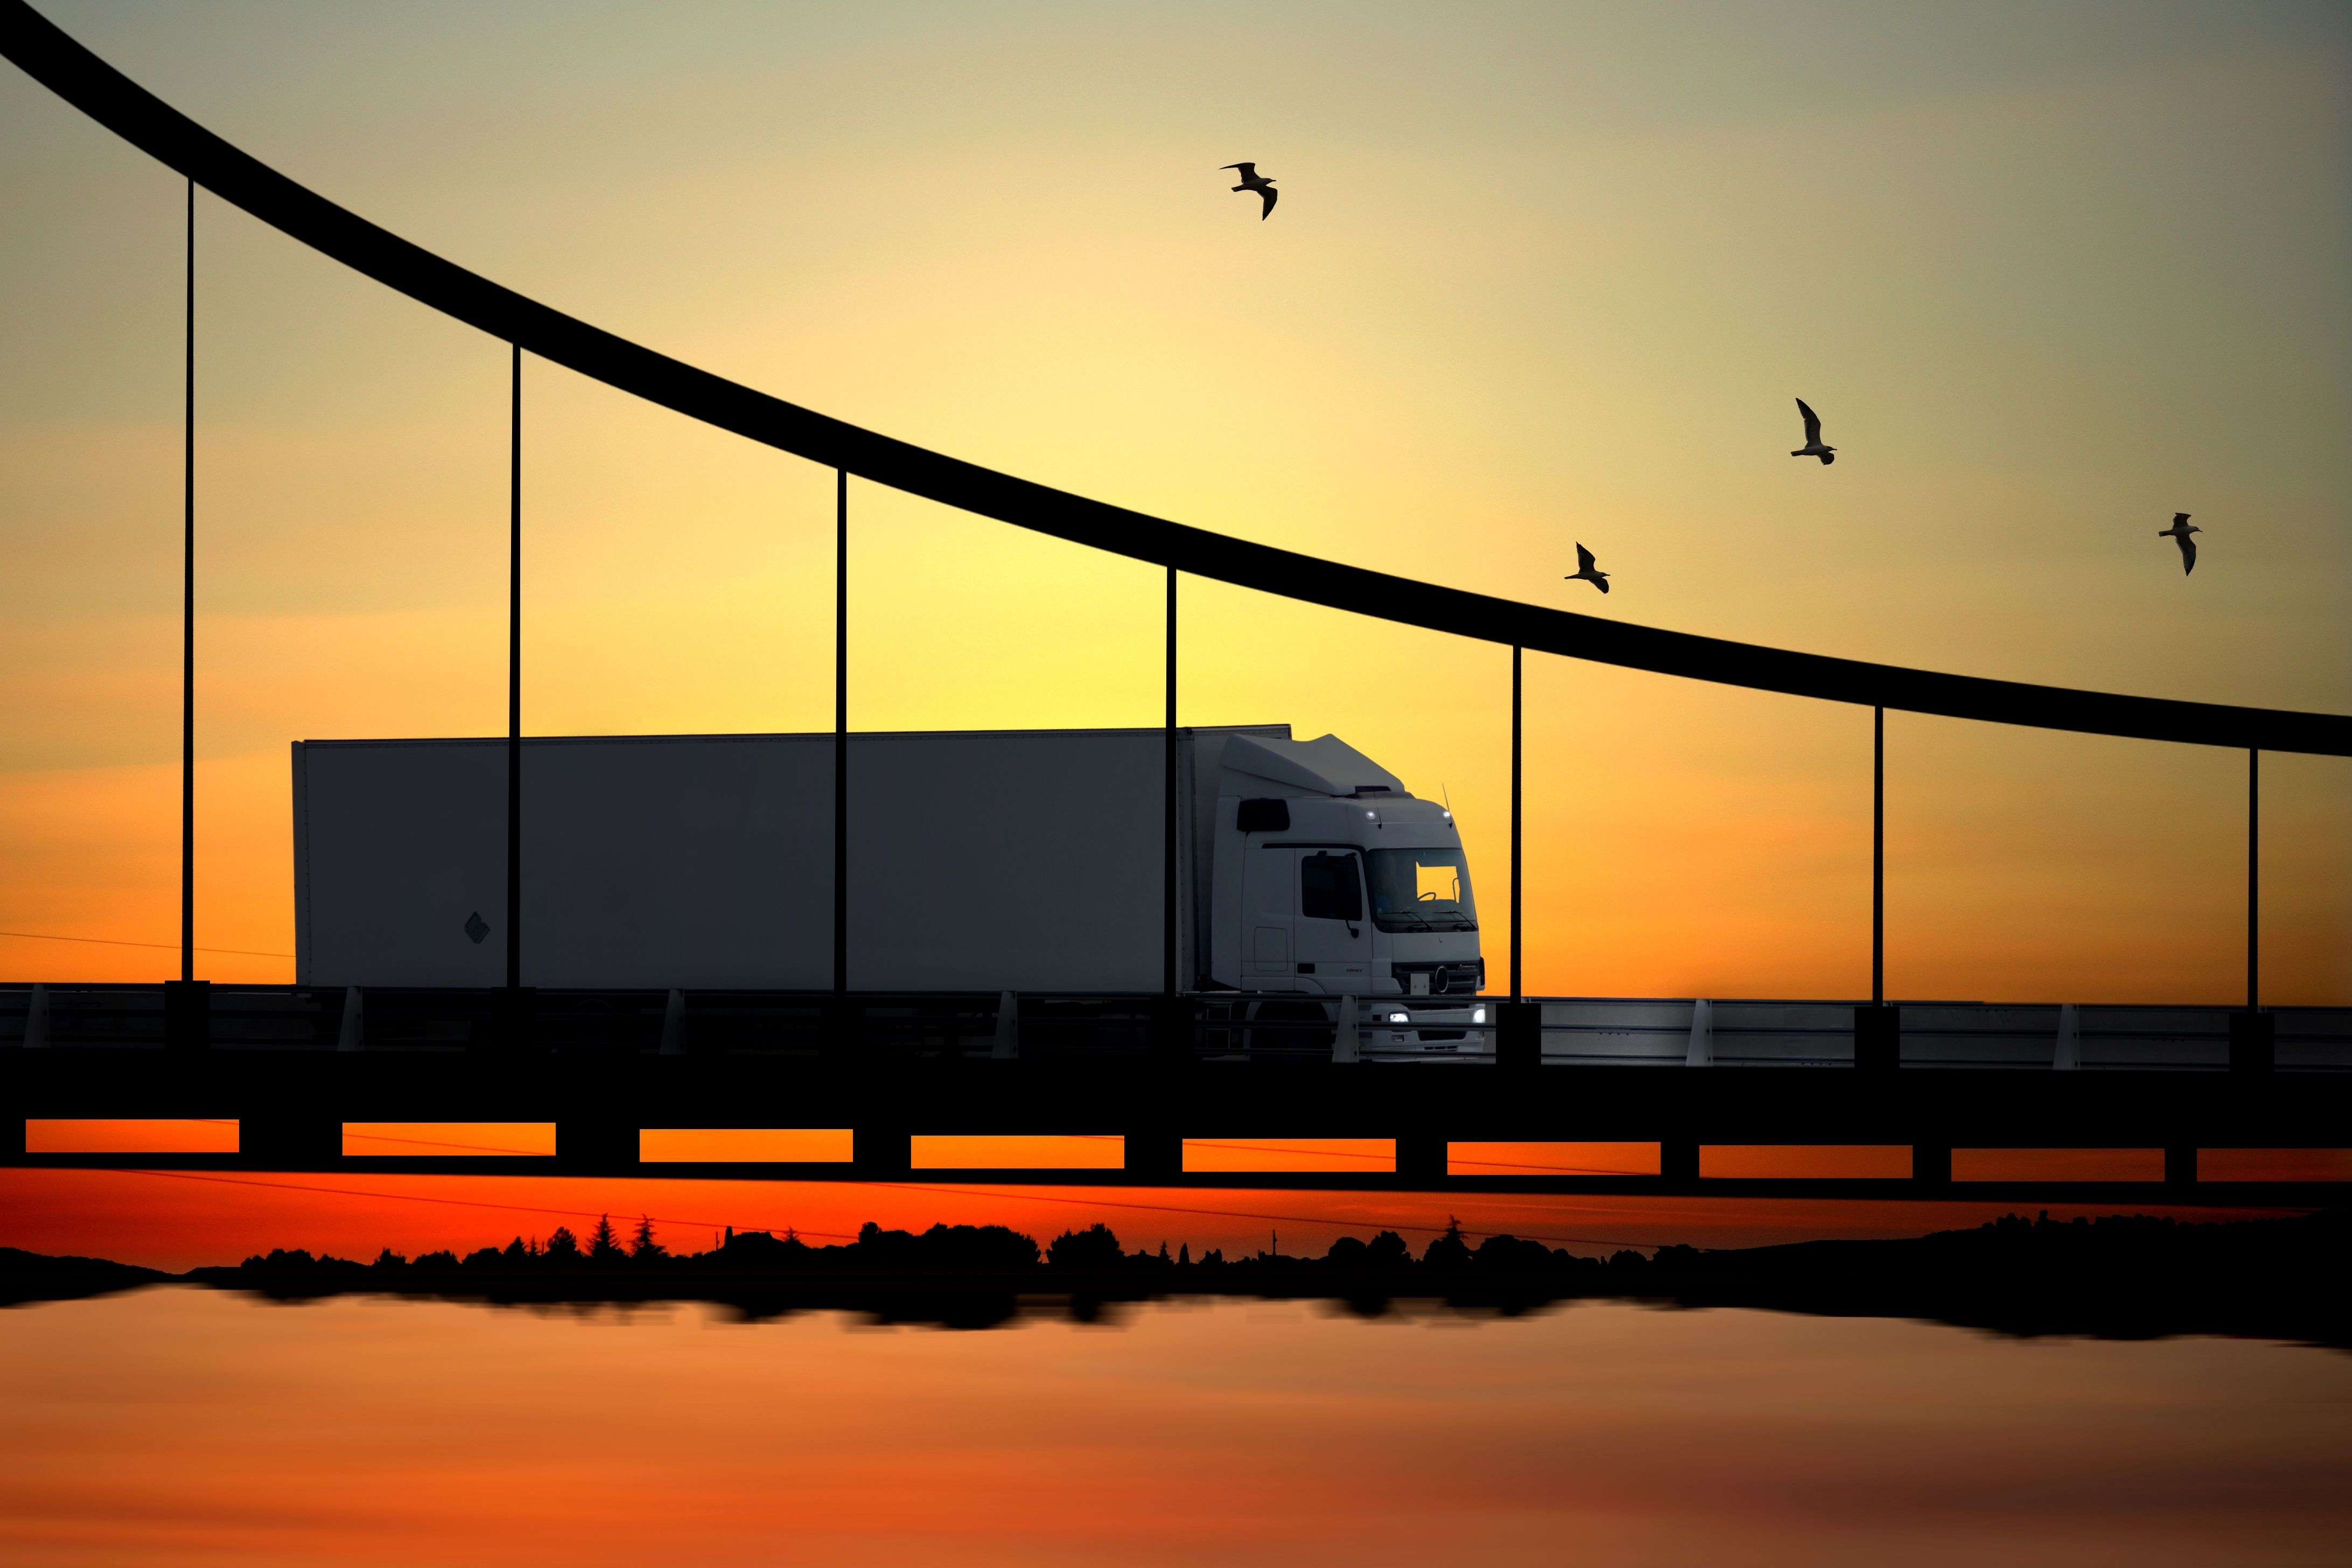 Federal Law Requires Commercial Trucks to Carry Liability